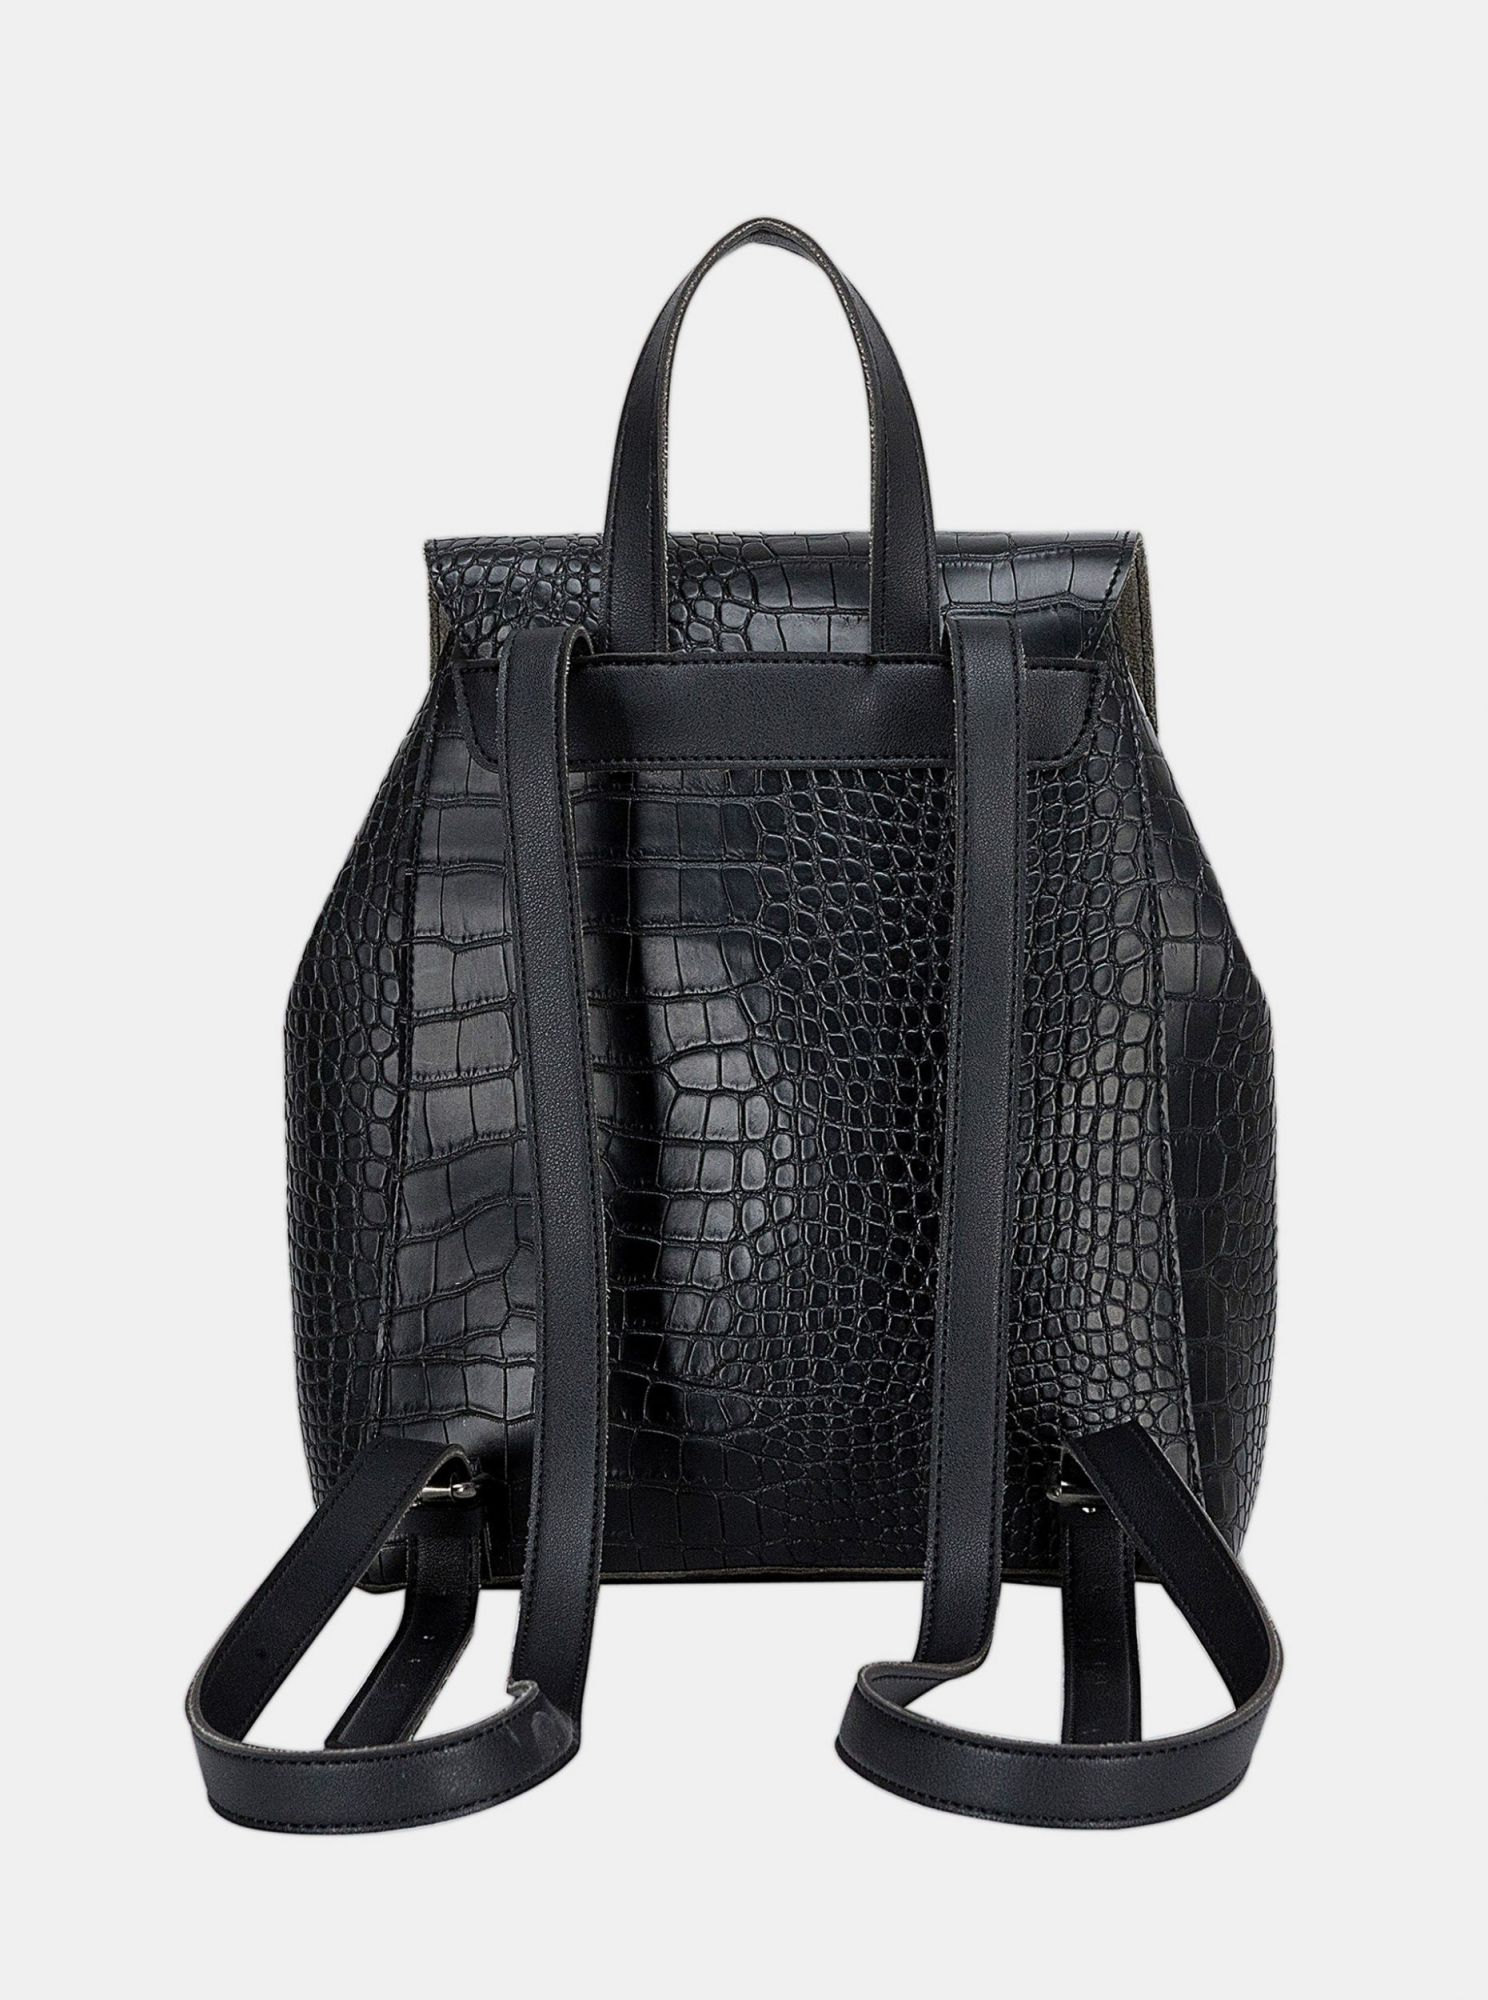 Black backpack with crocodile pattern by Claudia Canova Beth